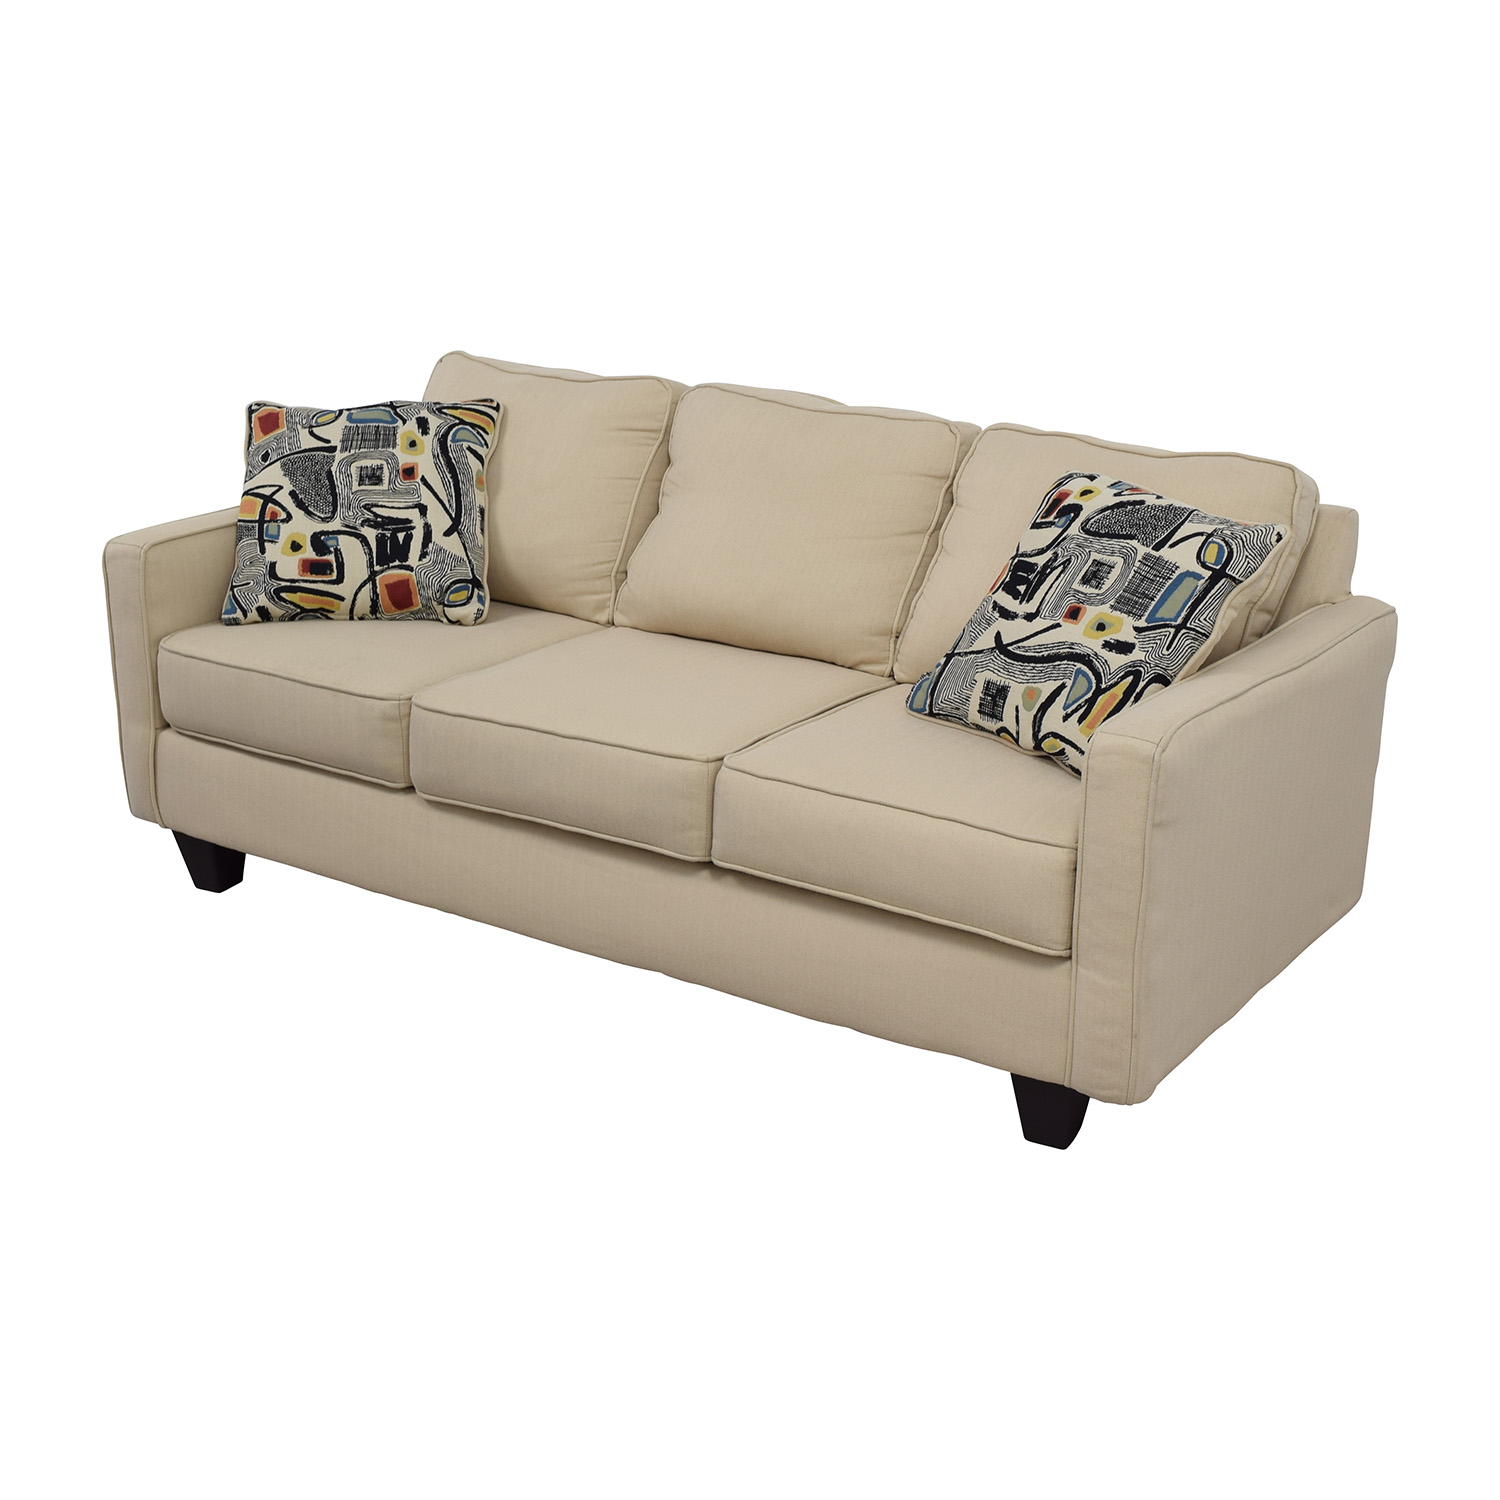 52 off wayfair wayfair allmodern three cushion beige for 3 on a couch